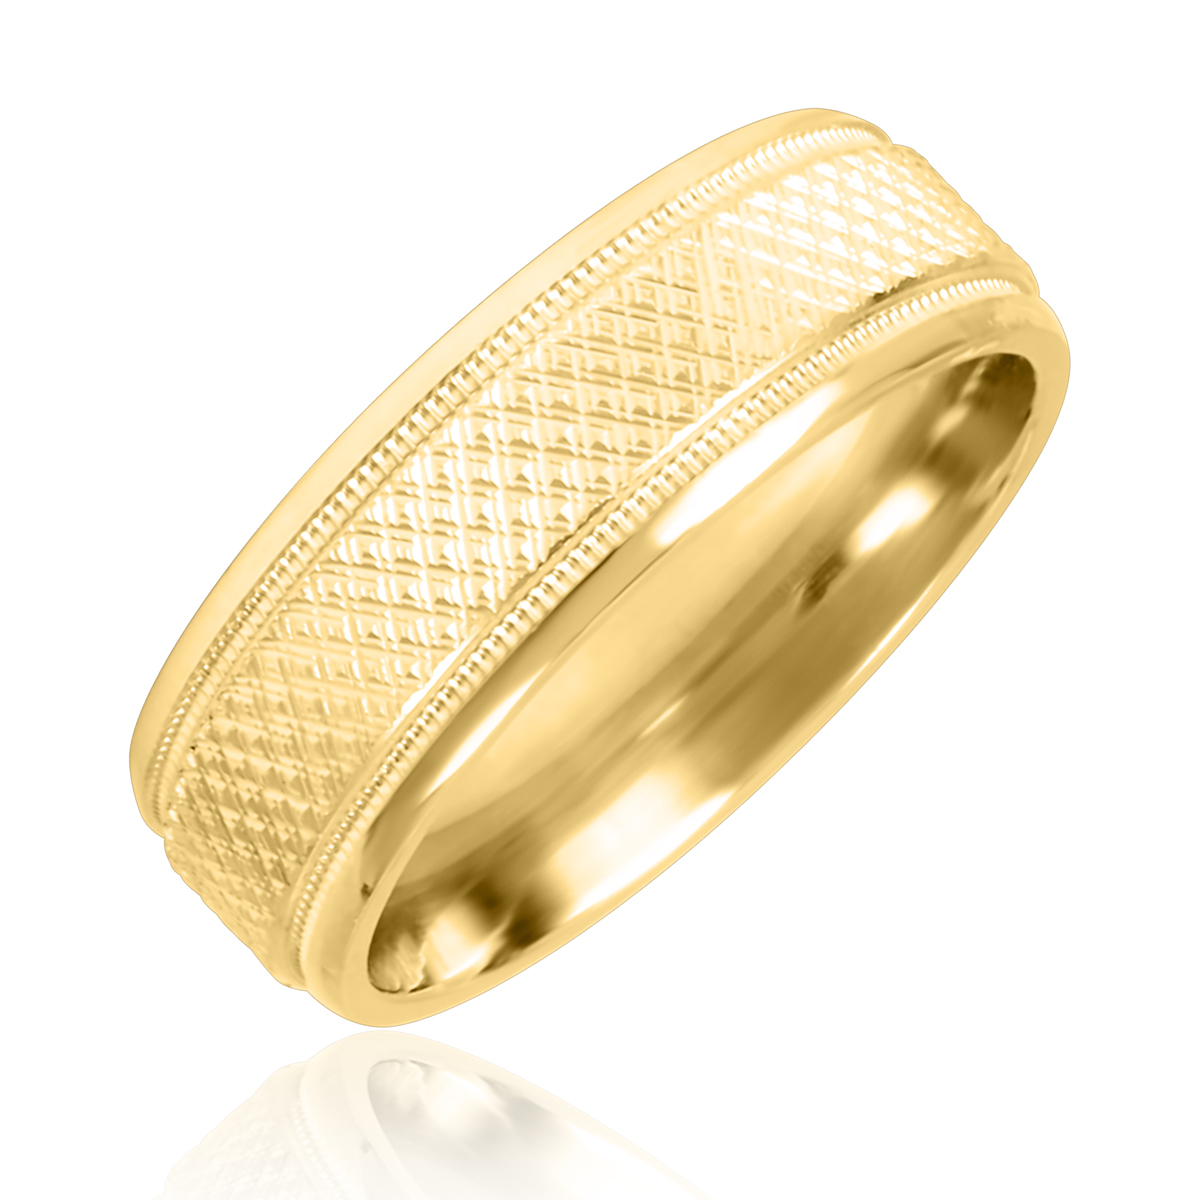 Zig-Zag Mens Wedding Band 10K Yellow Gold- Size 8